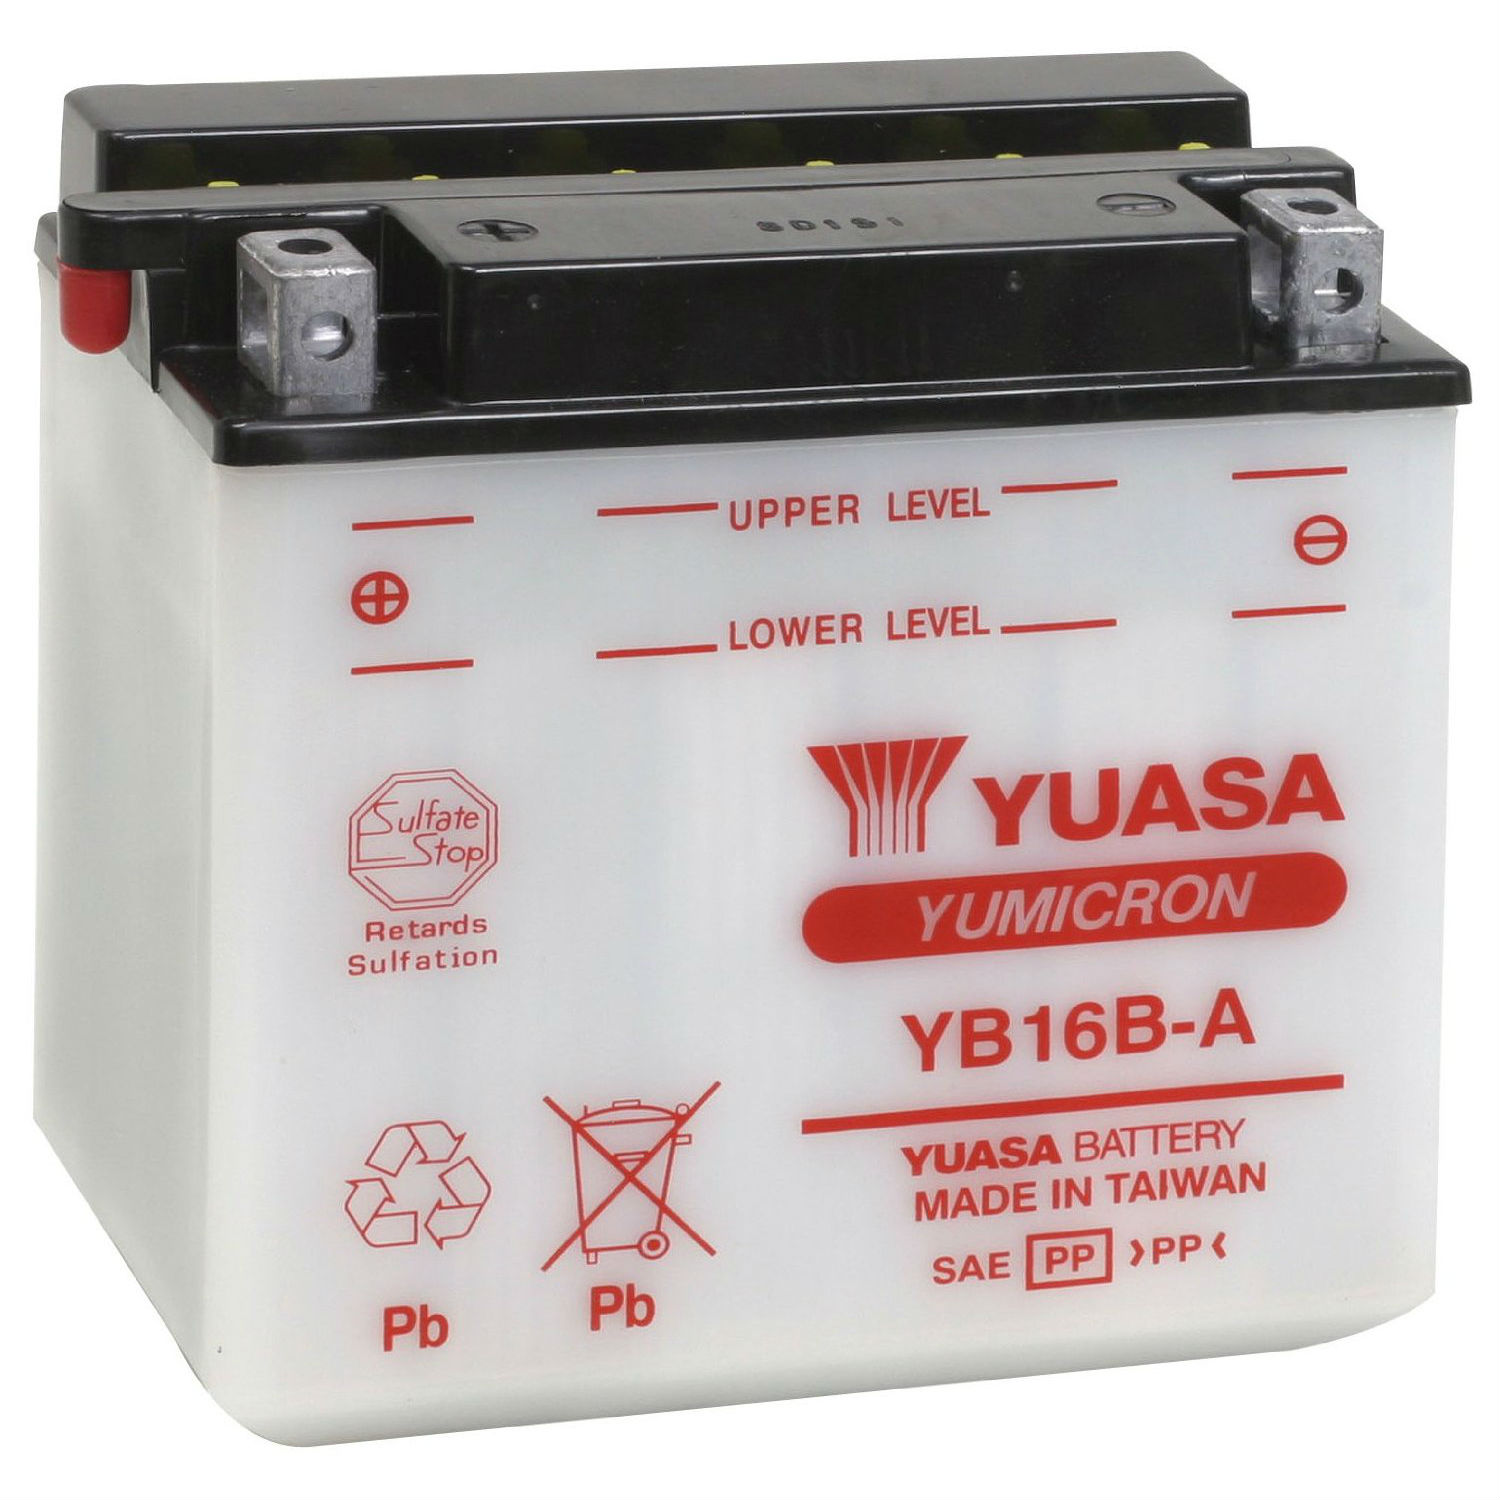 Get it delivered to your door - Yuasa YB16B-A Battery (Taiwan) - 720 (EGP)